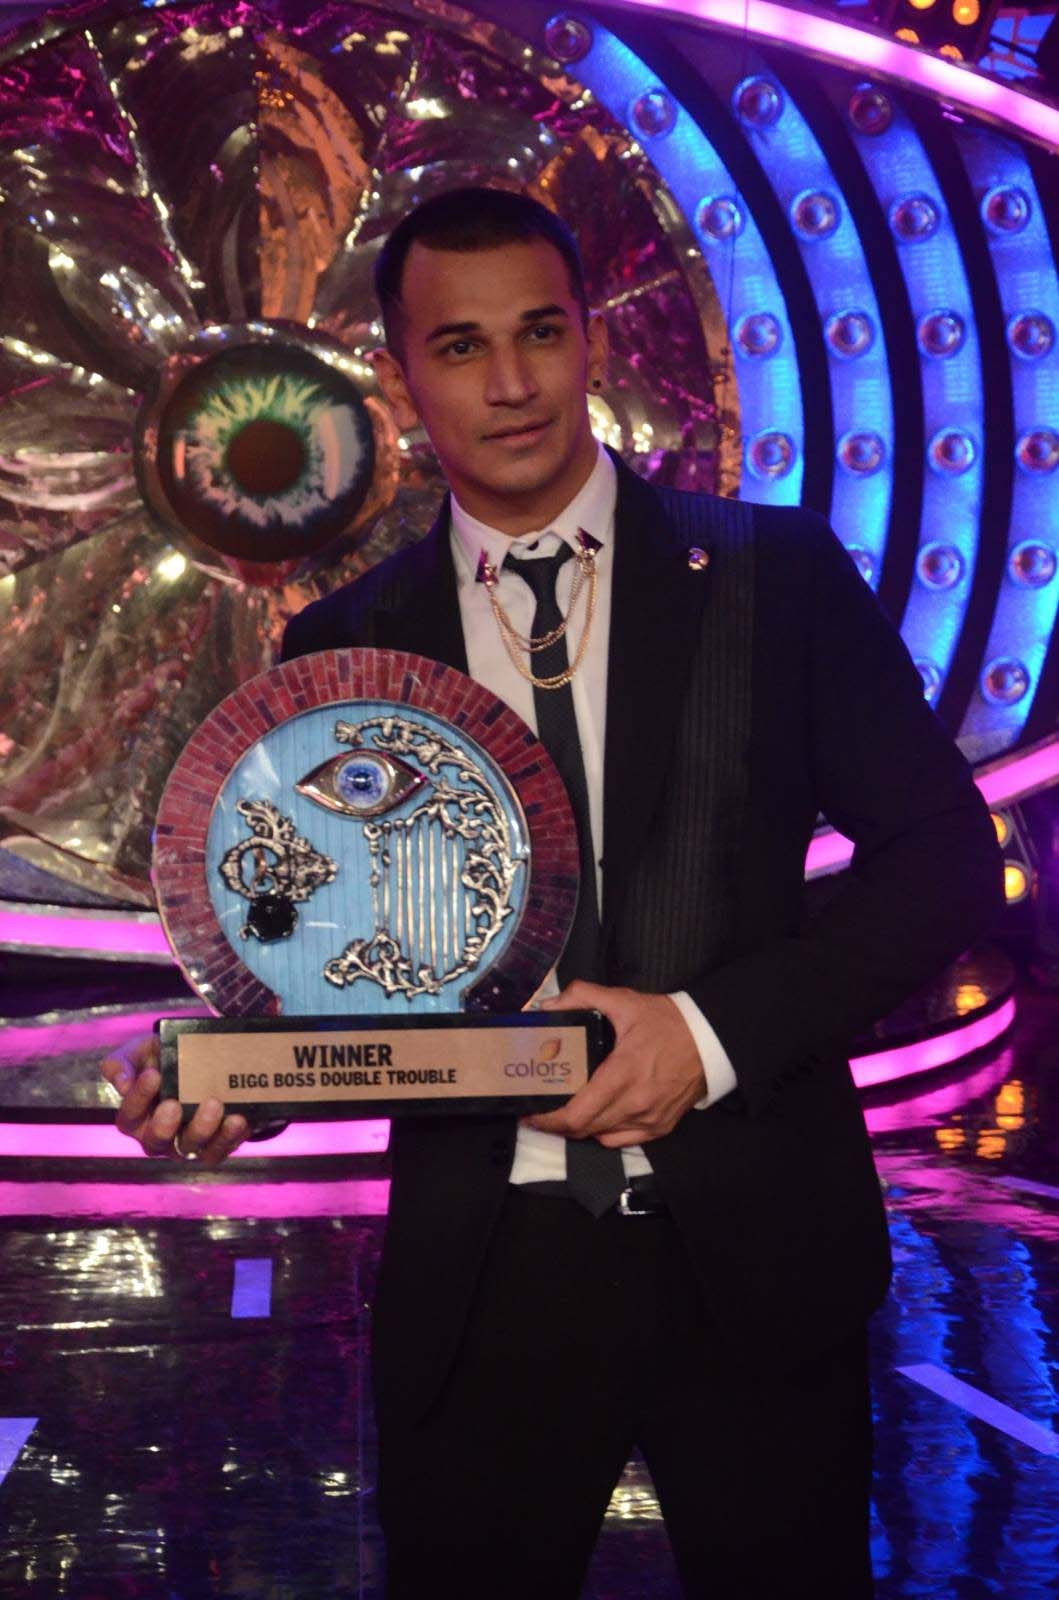 Bigg Boss 9 Double Trouble Winner Name & Finale Date with Prize Money Details